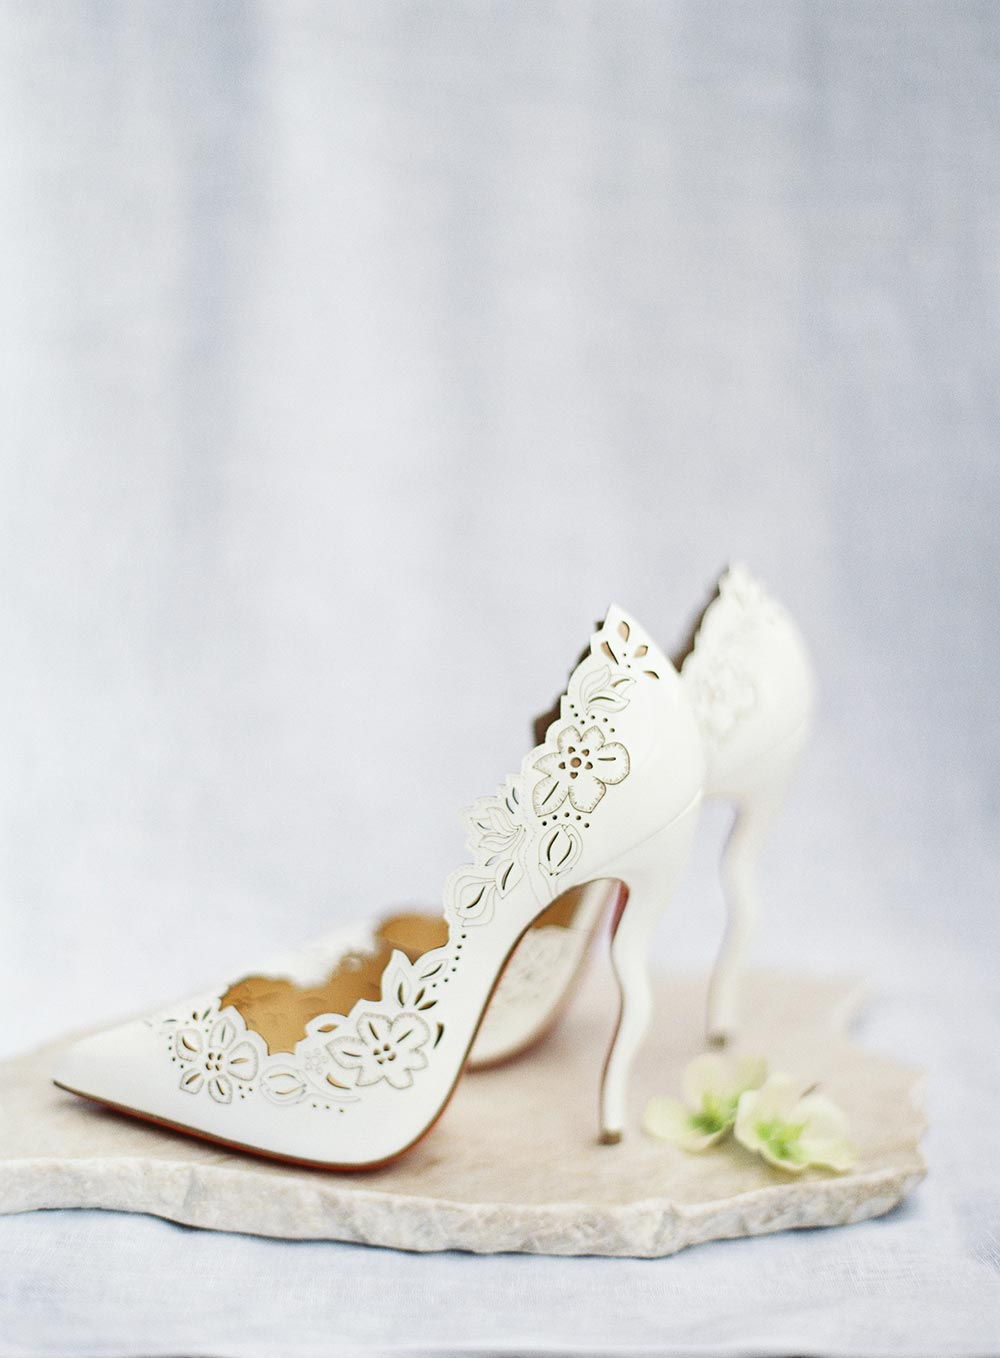 dye cut Louboutin wedding heels